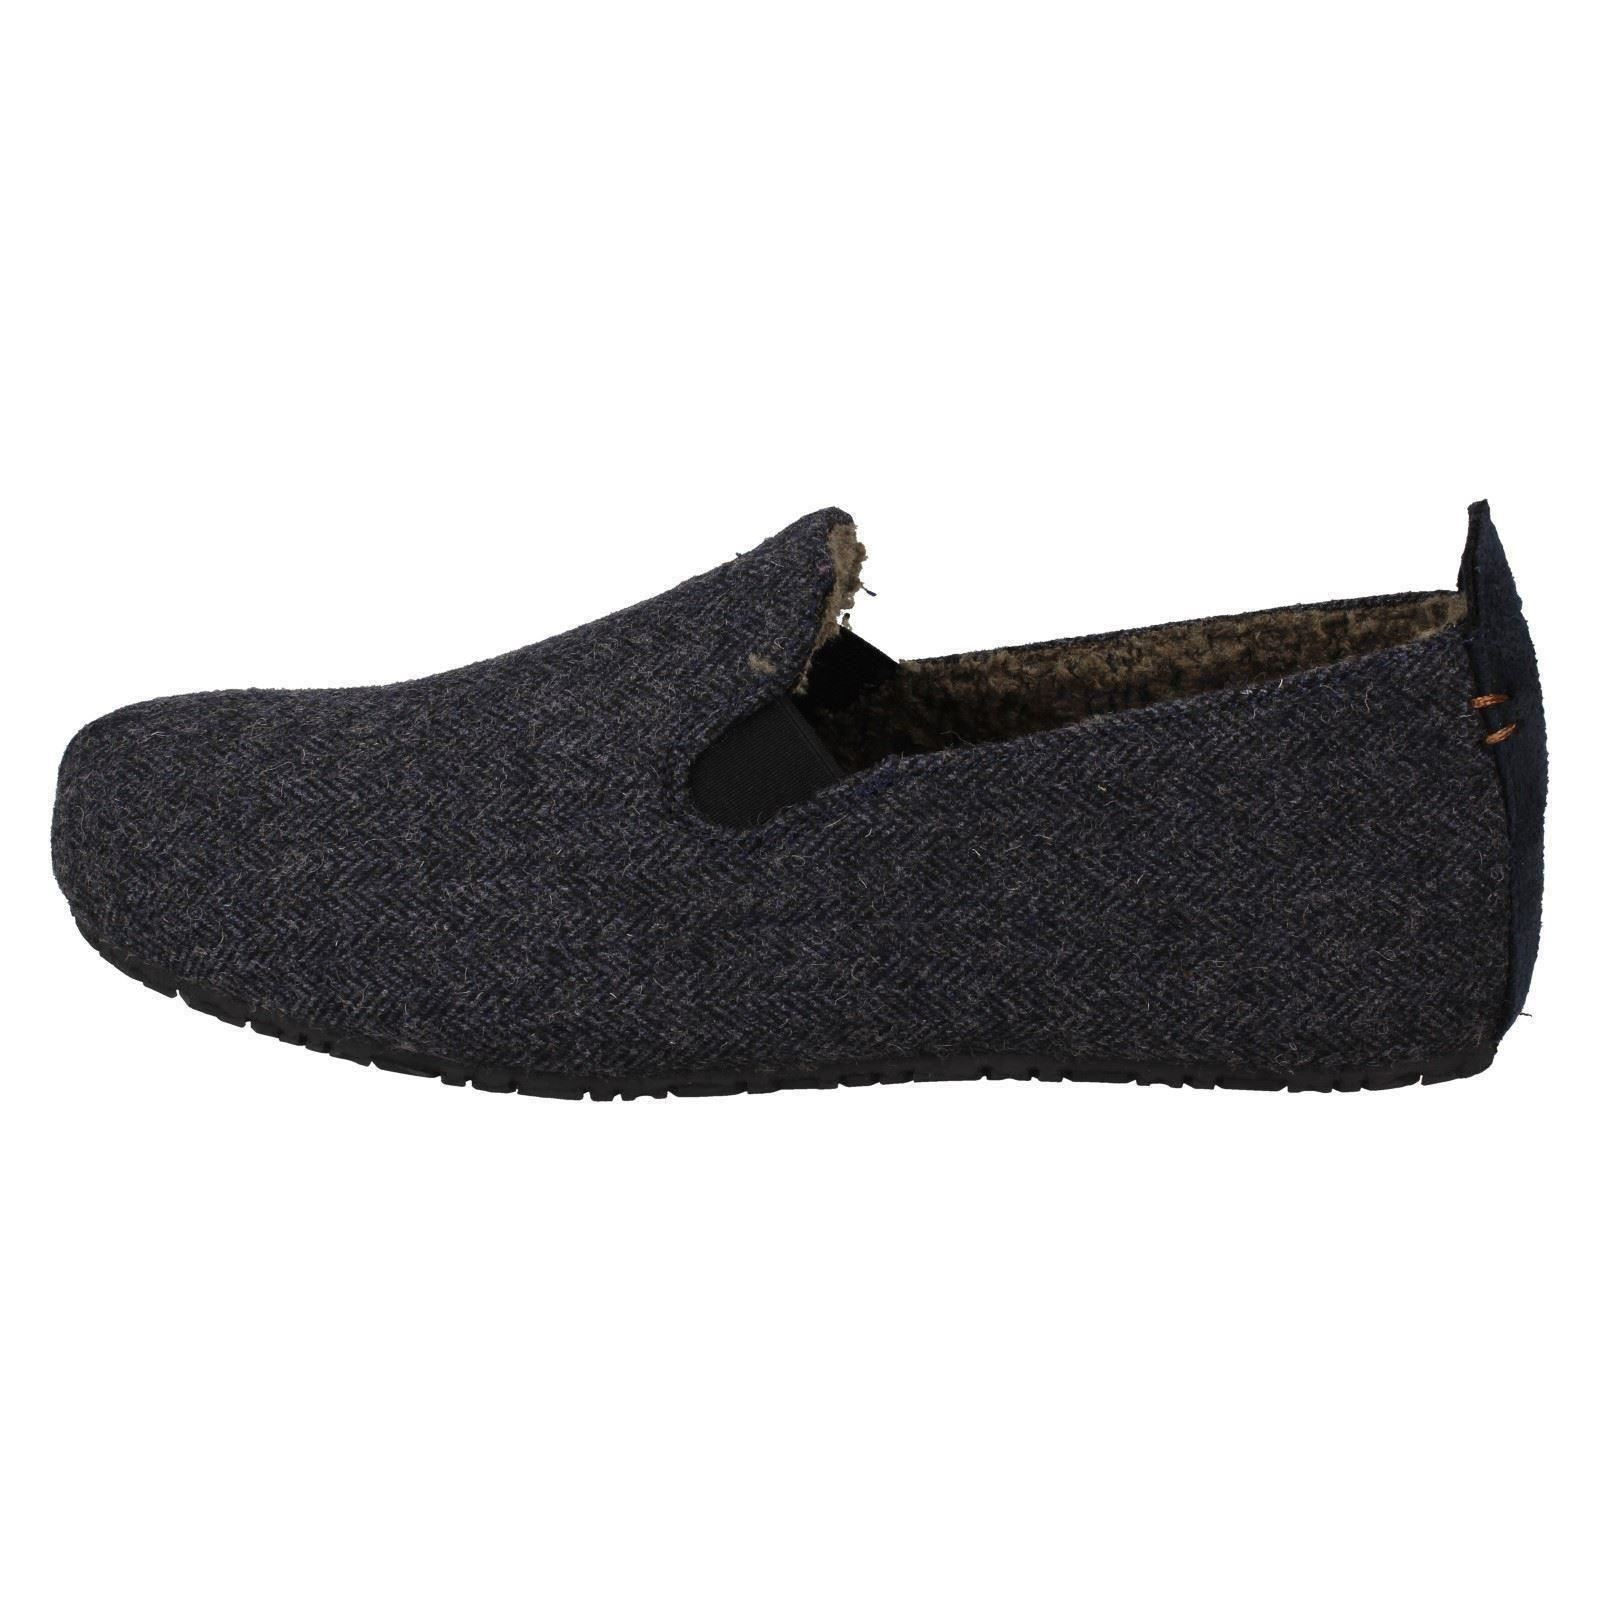 MENS CLARKS SUEDE SLIP ON FUR LINED WARM WINTER SLIPPERS SHOES SIZE KITE FALCON